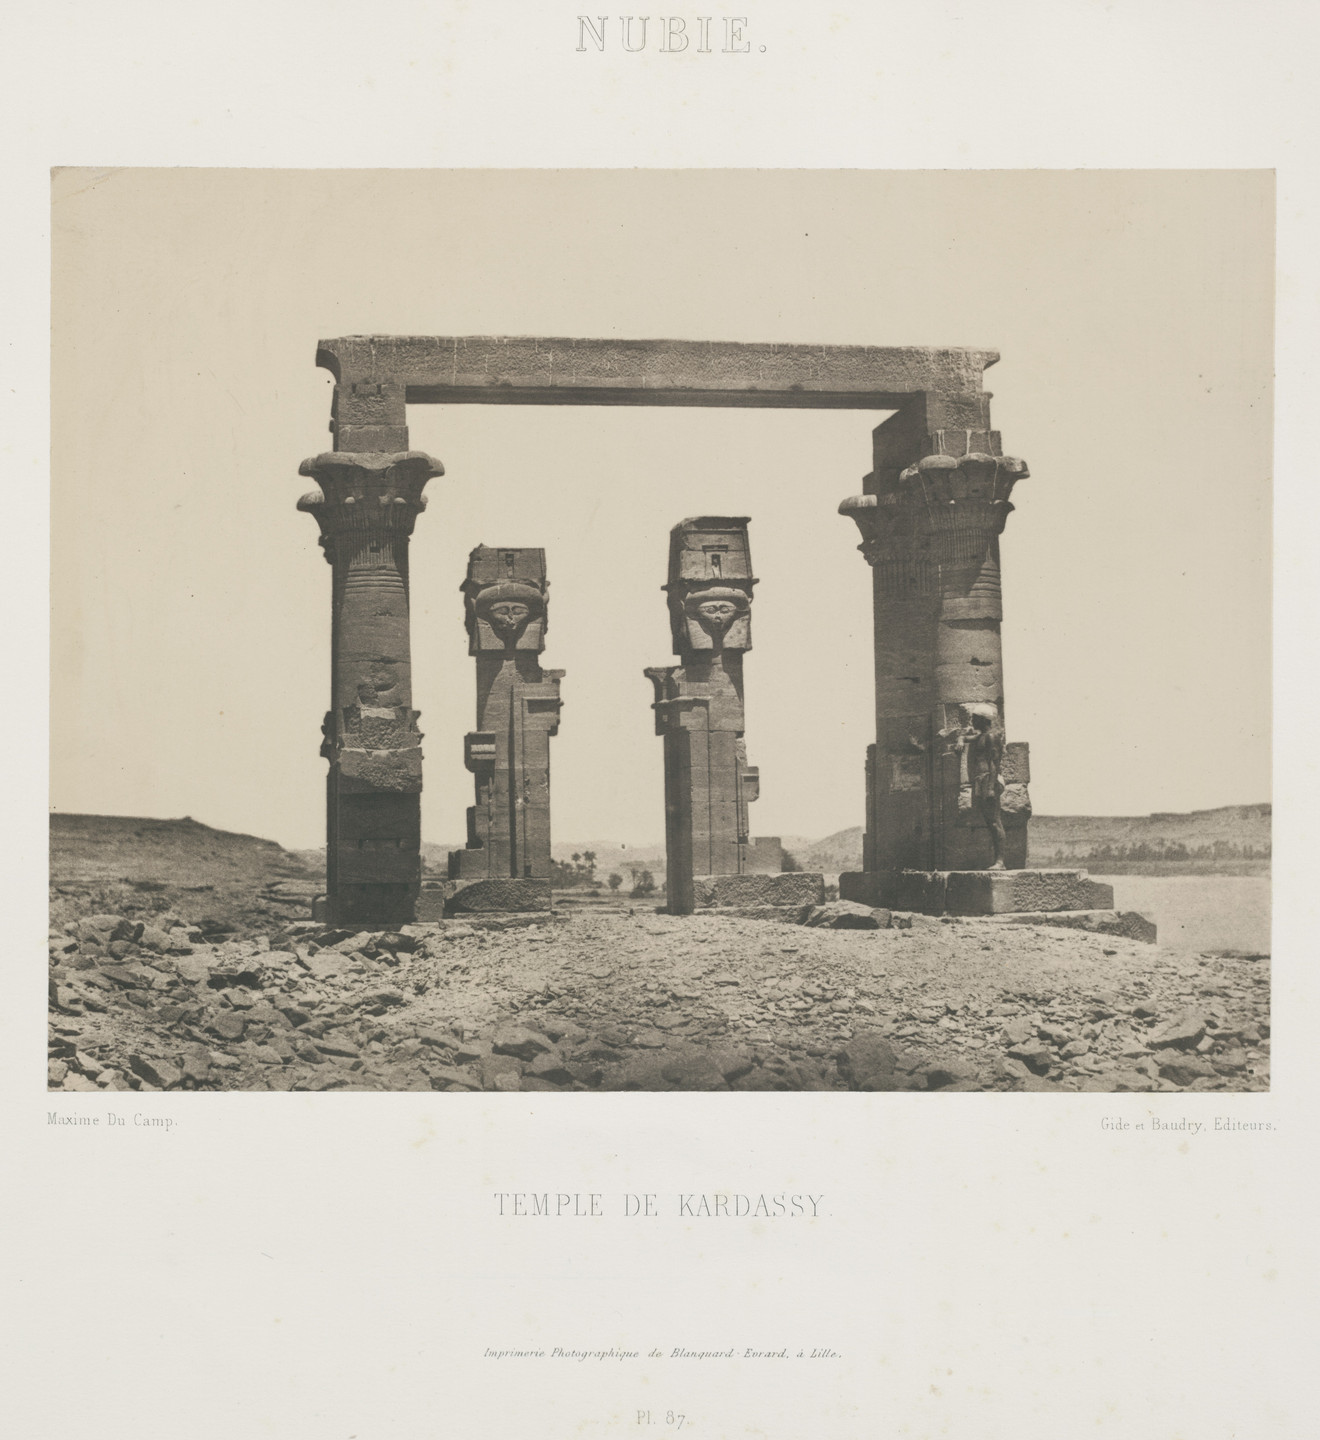 Maxime Du Camp. Temple of Wady Kardassy. 1849-51